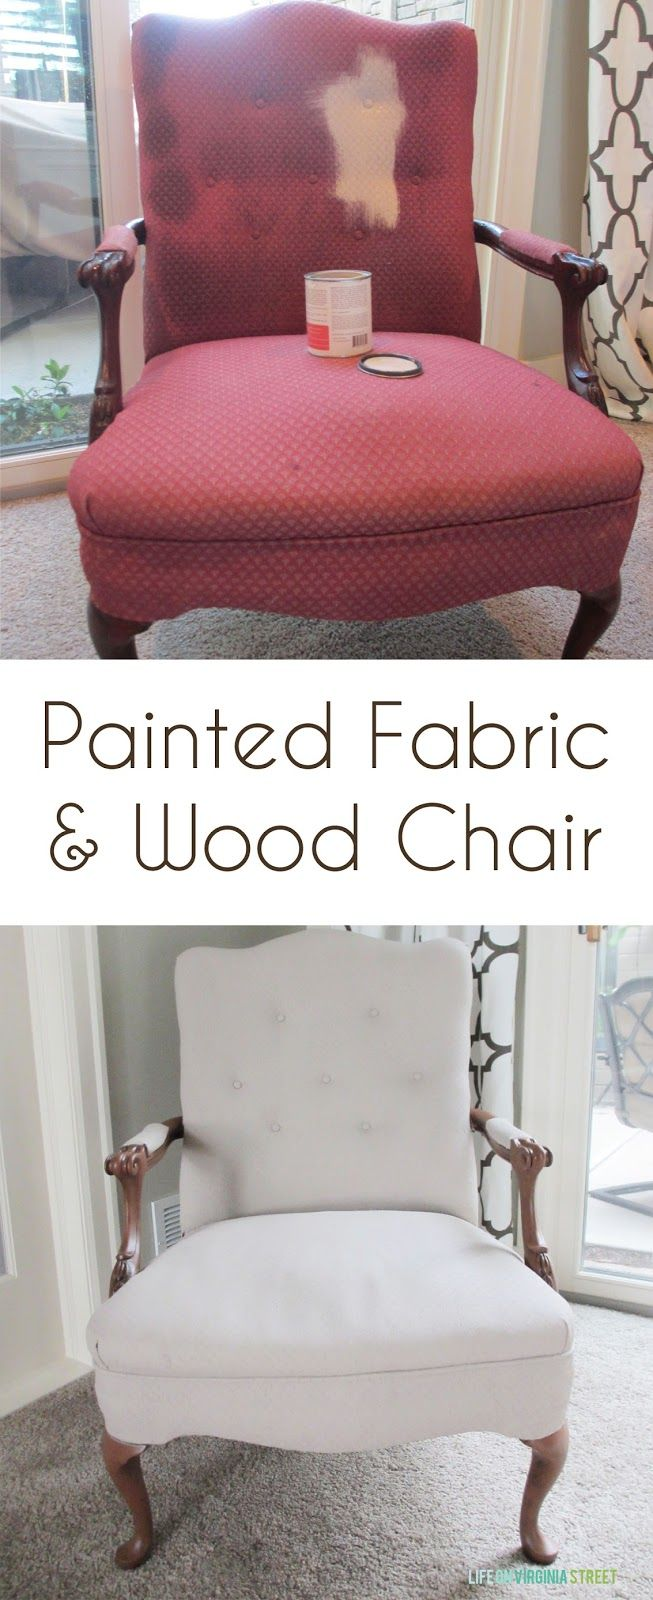 Painted Fabric and Wood Chair